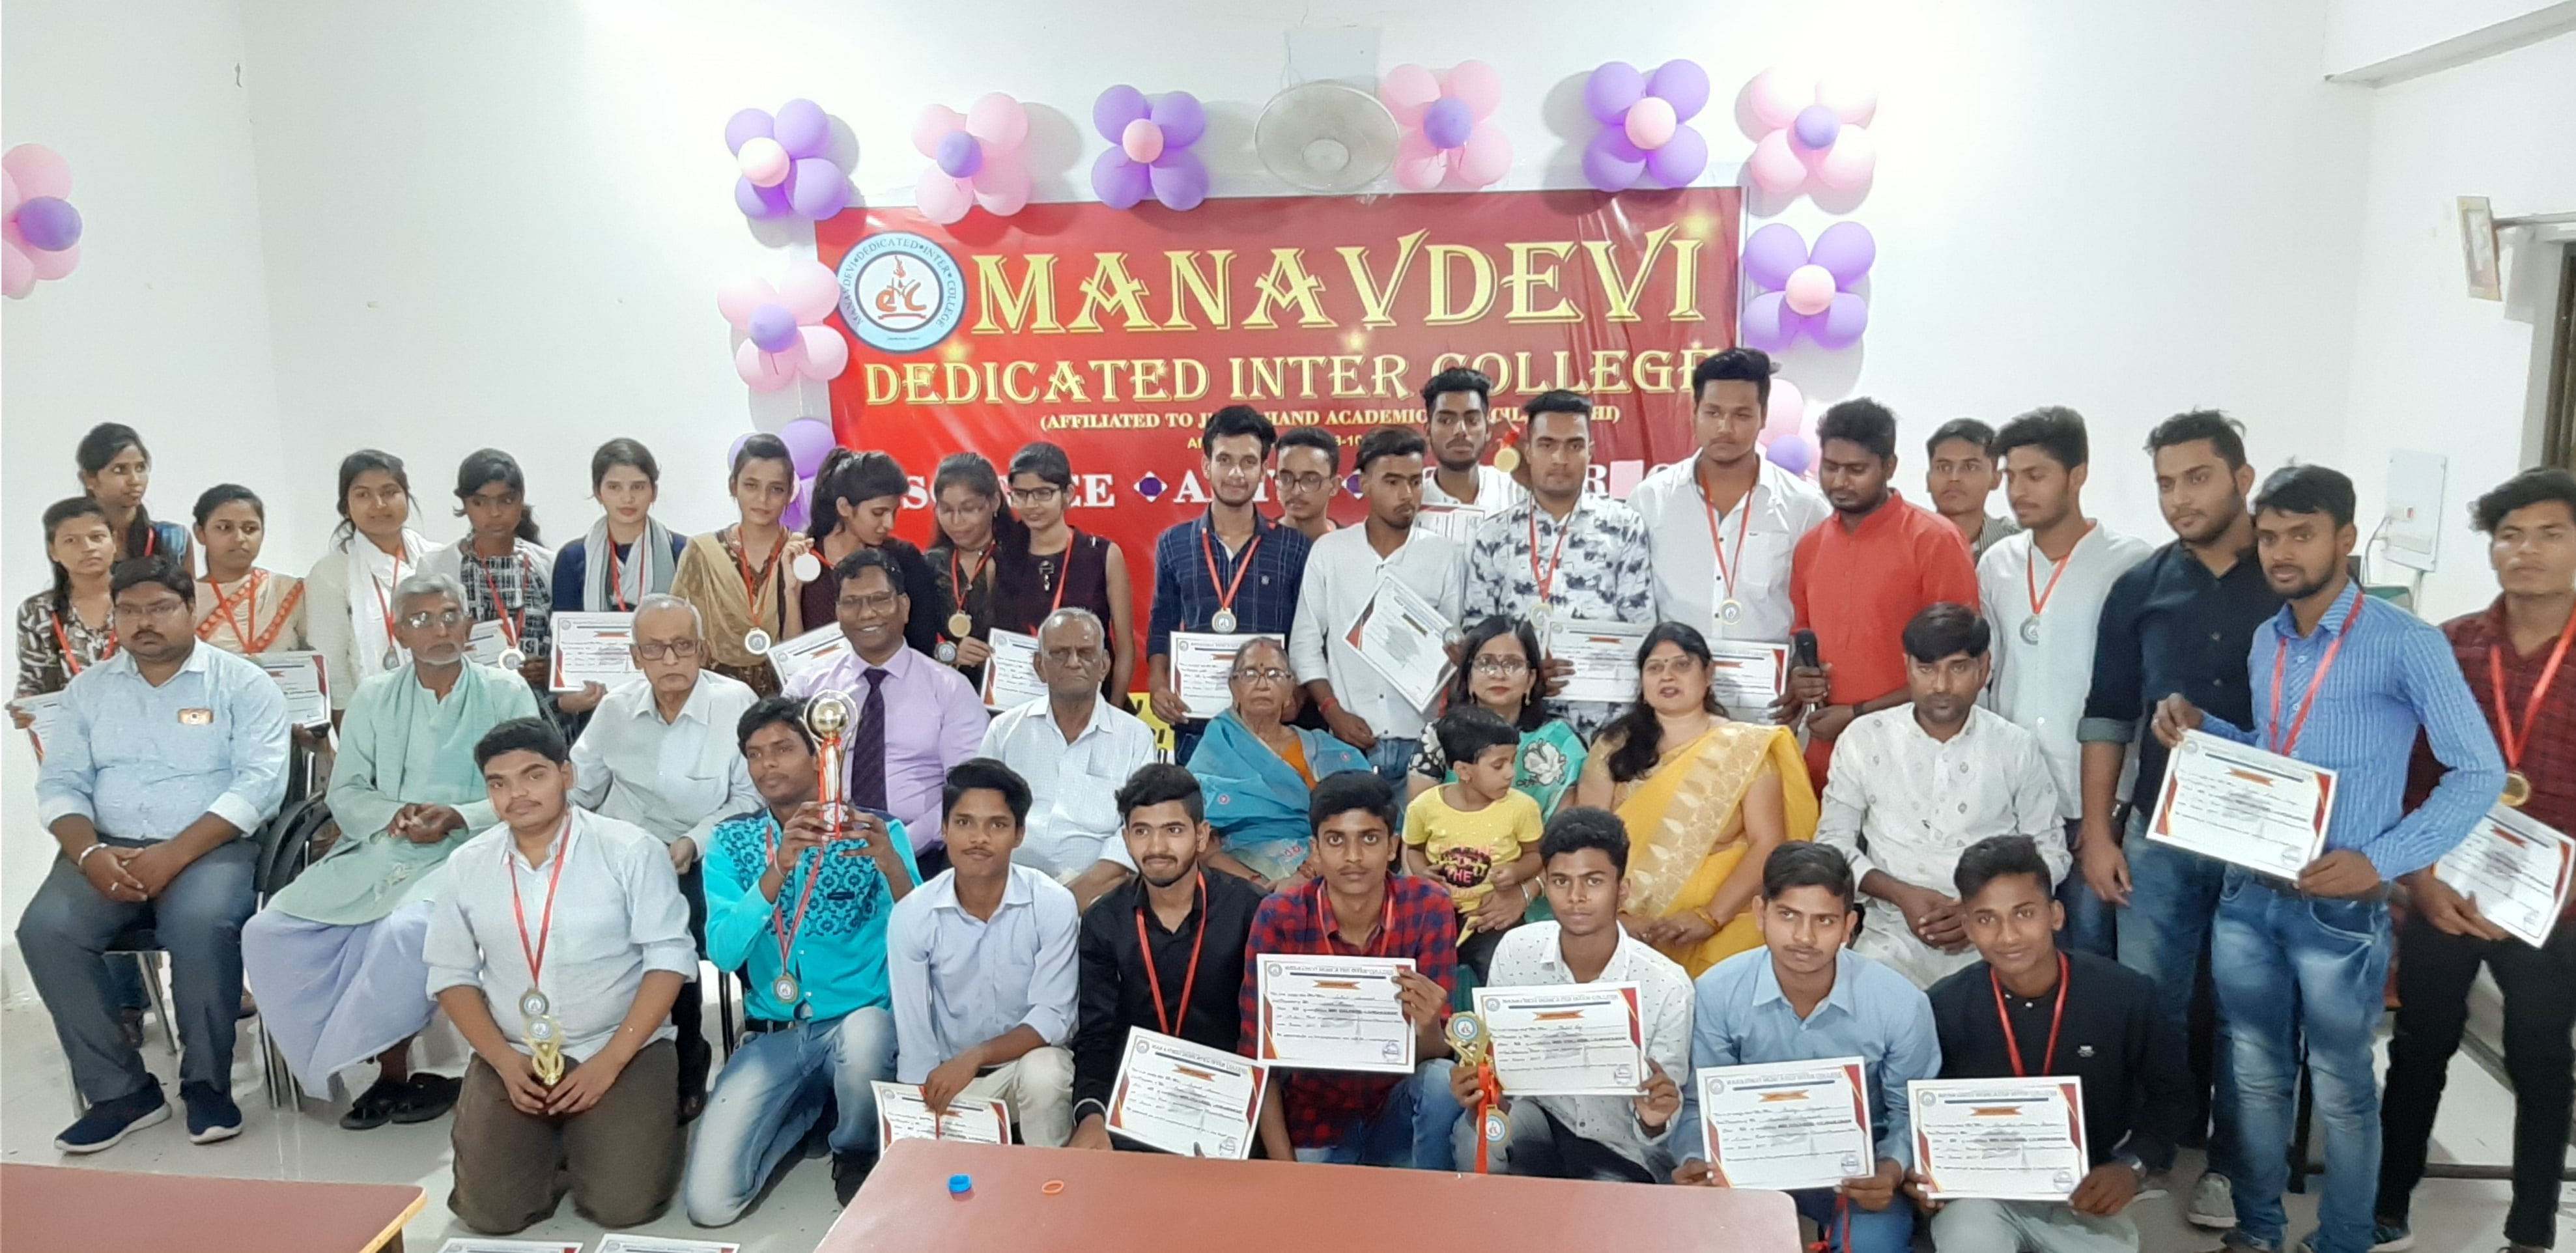 Group Photograph of all the students and Faculty Members